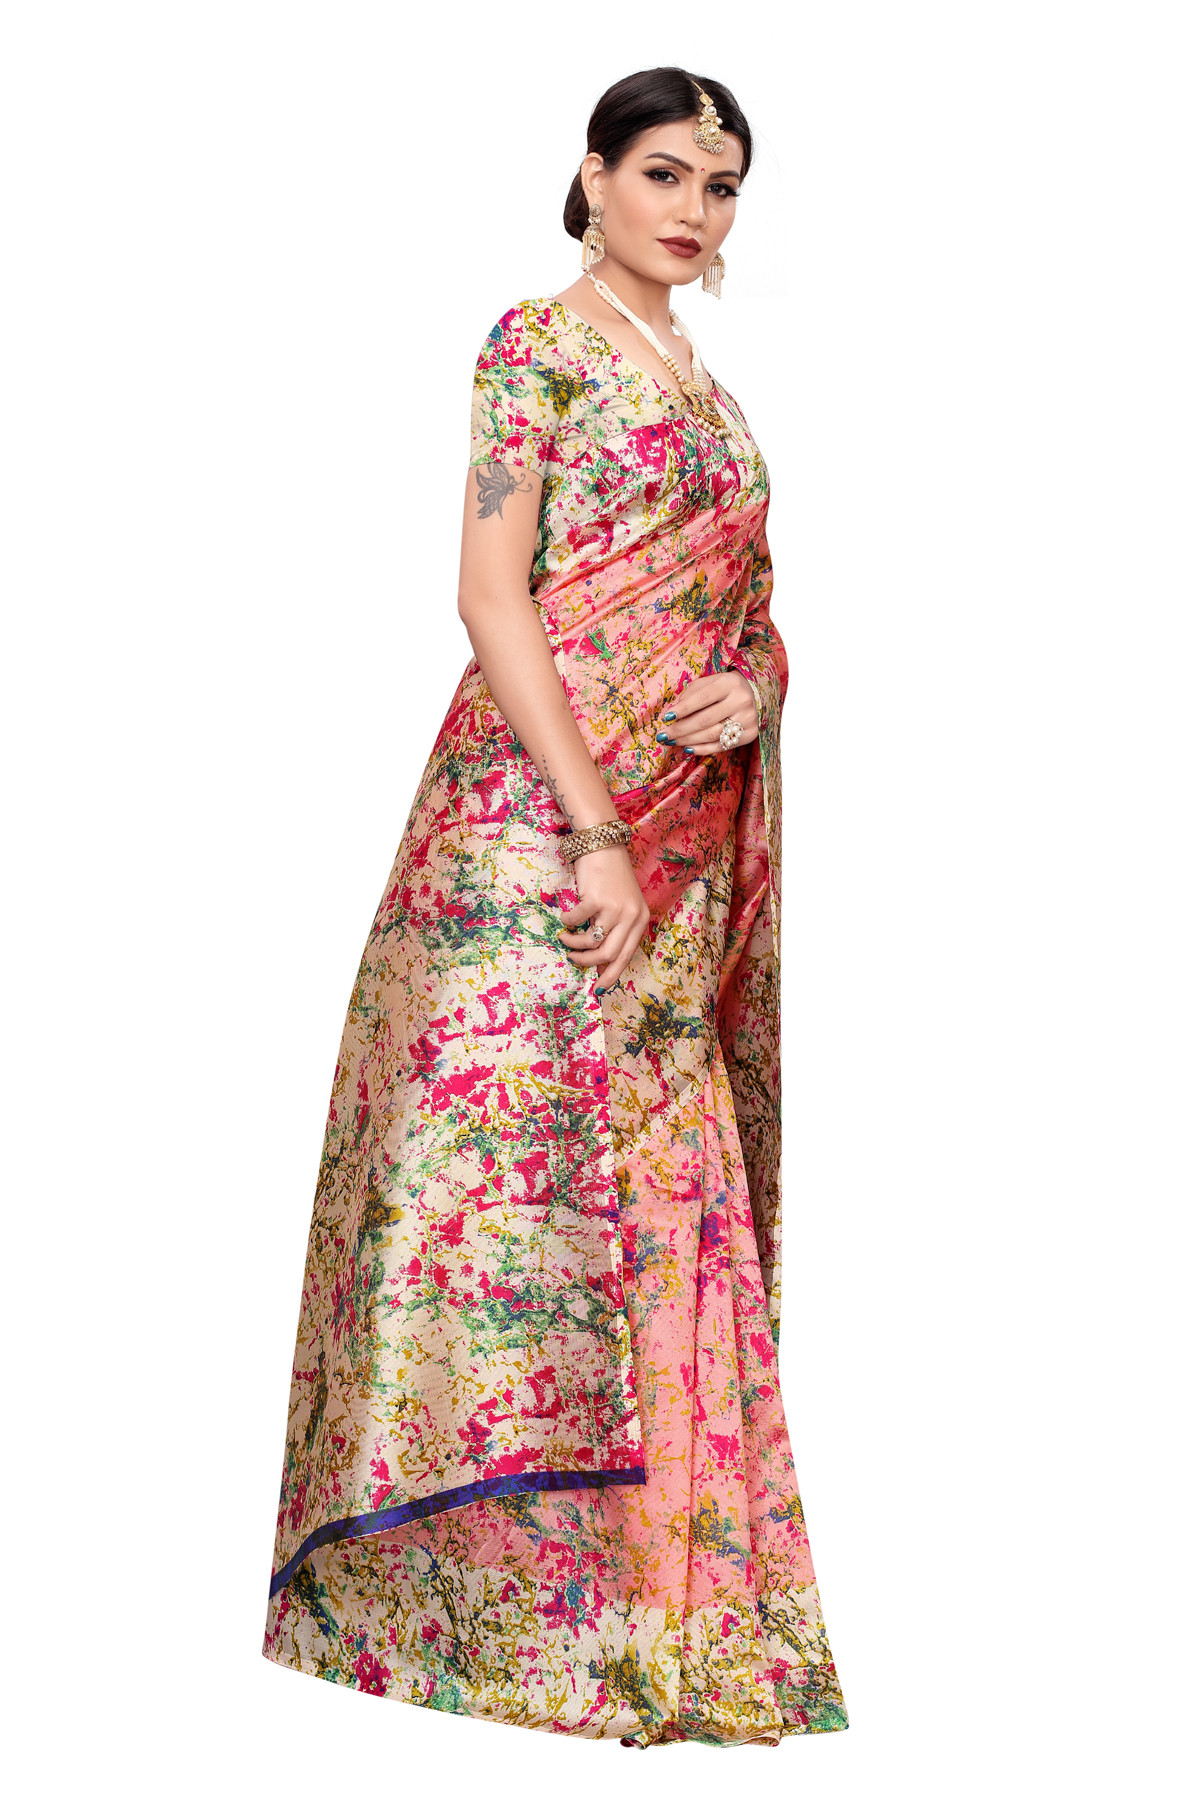 Amazing Culture Design Party Wear Cream & Multi Color Maysor Silk Saree